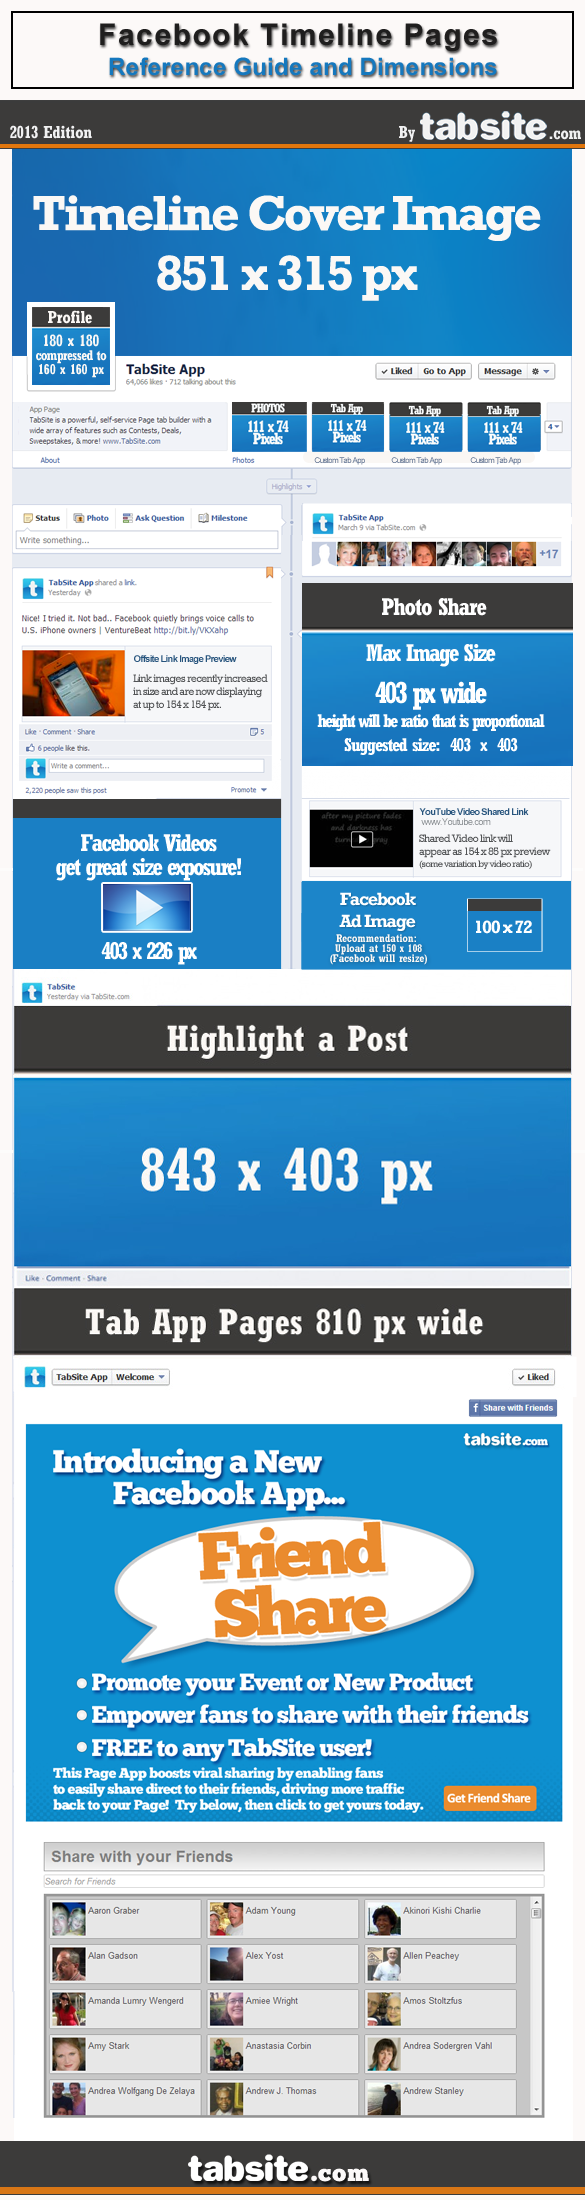 Facebook Pages Timeline Infographic - 2013 Edition by TabSite